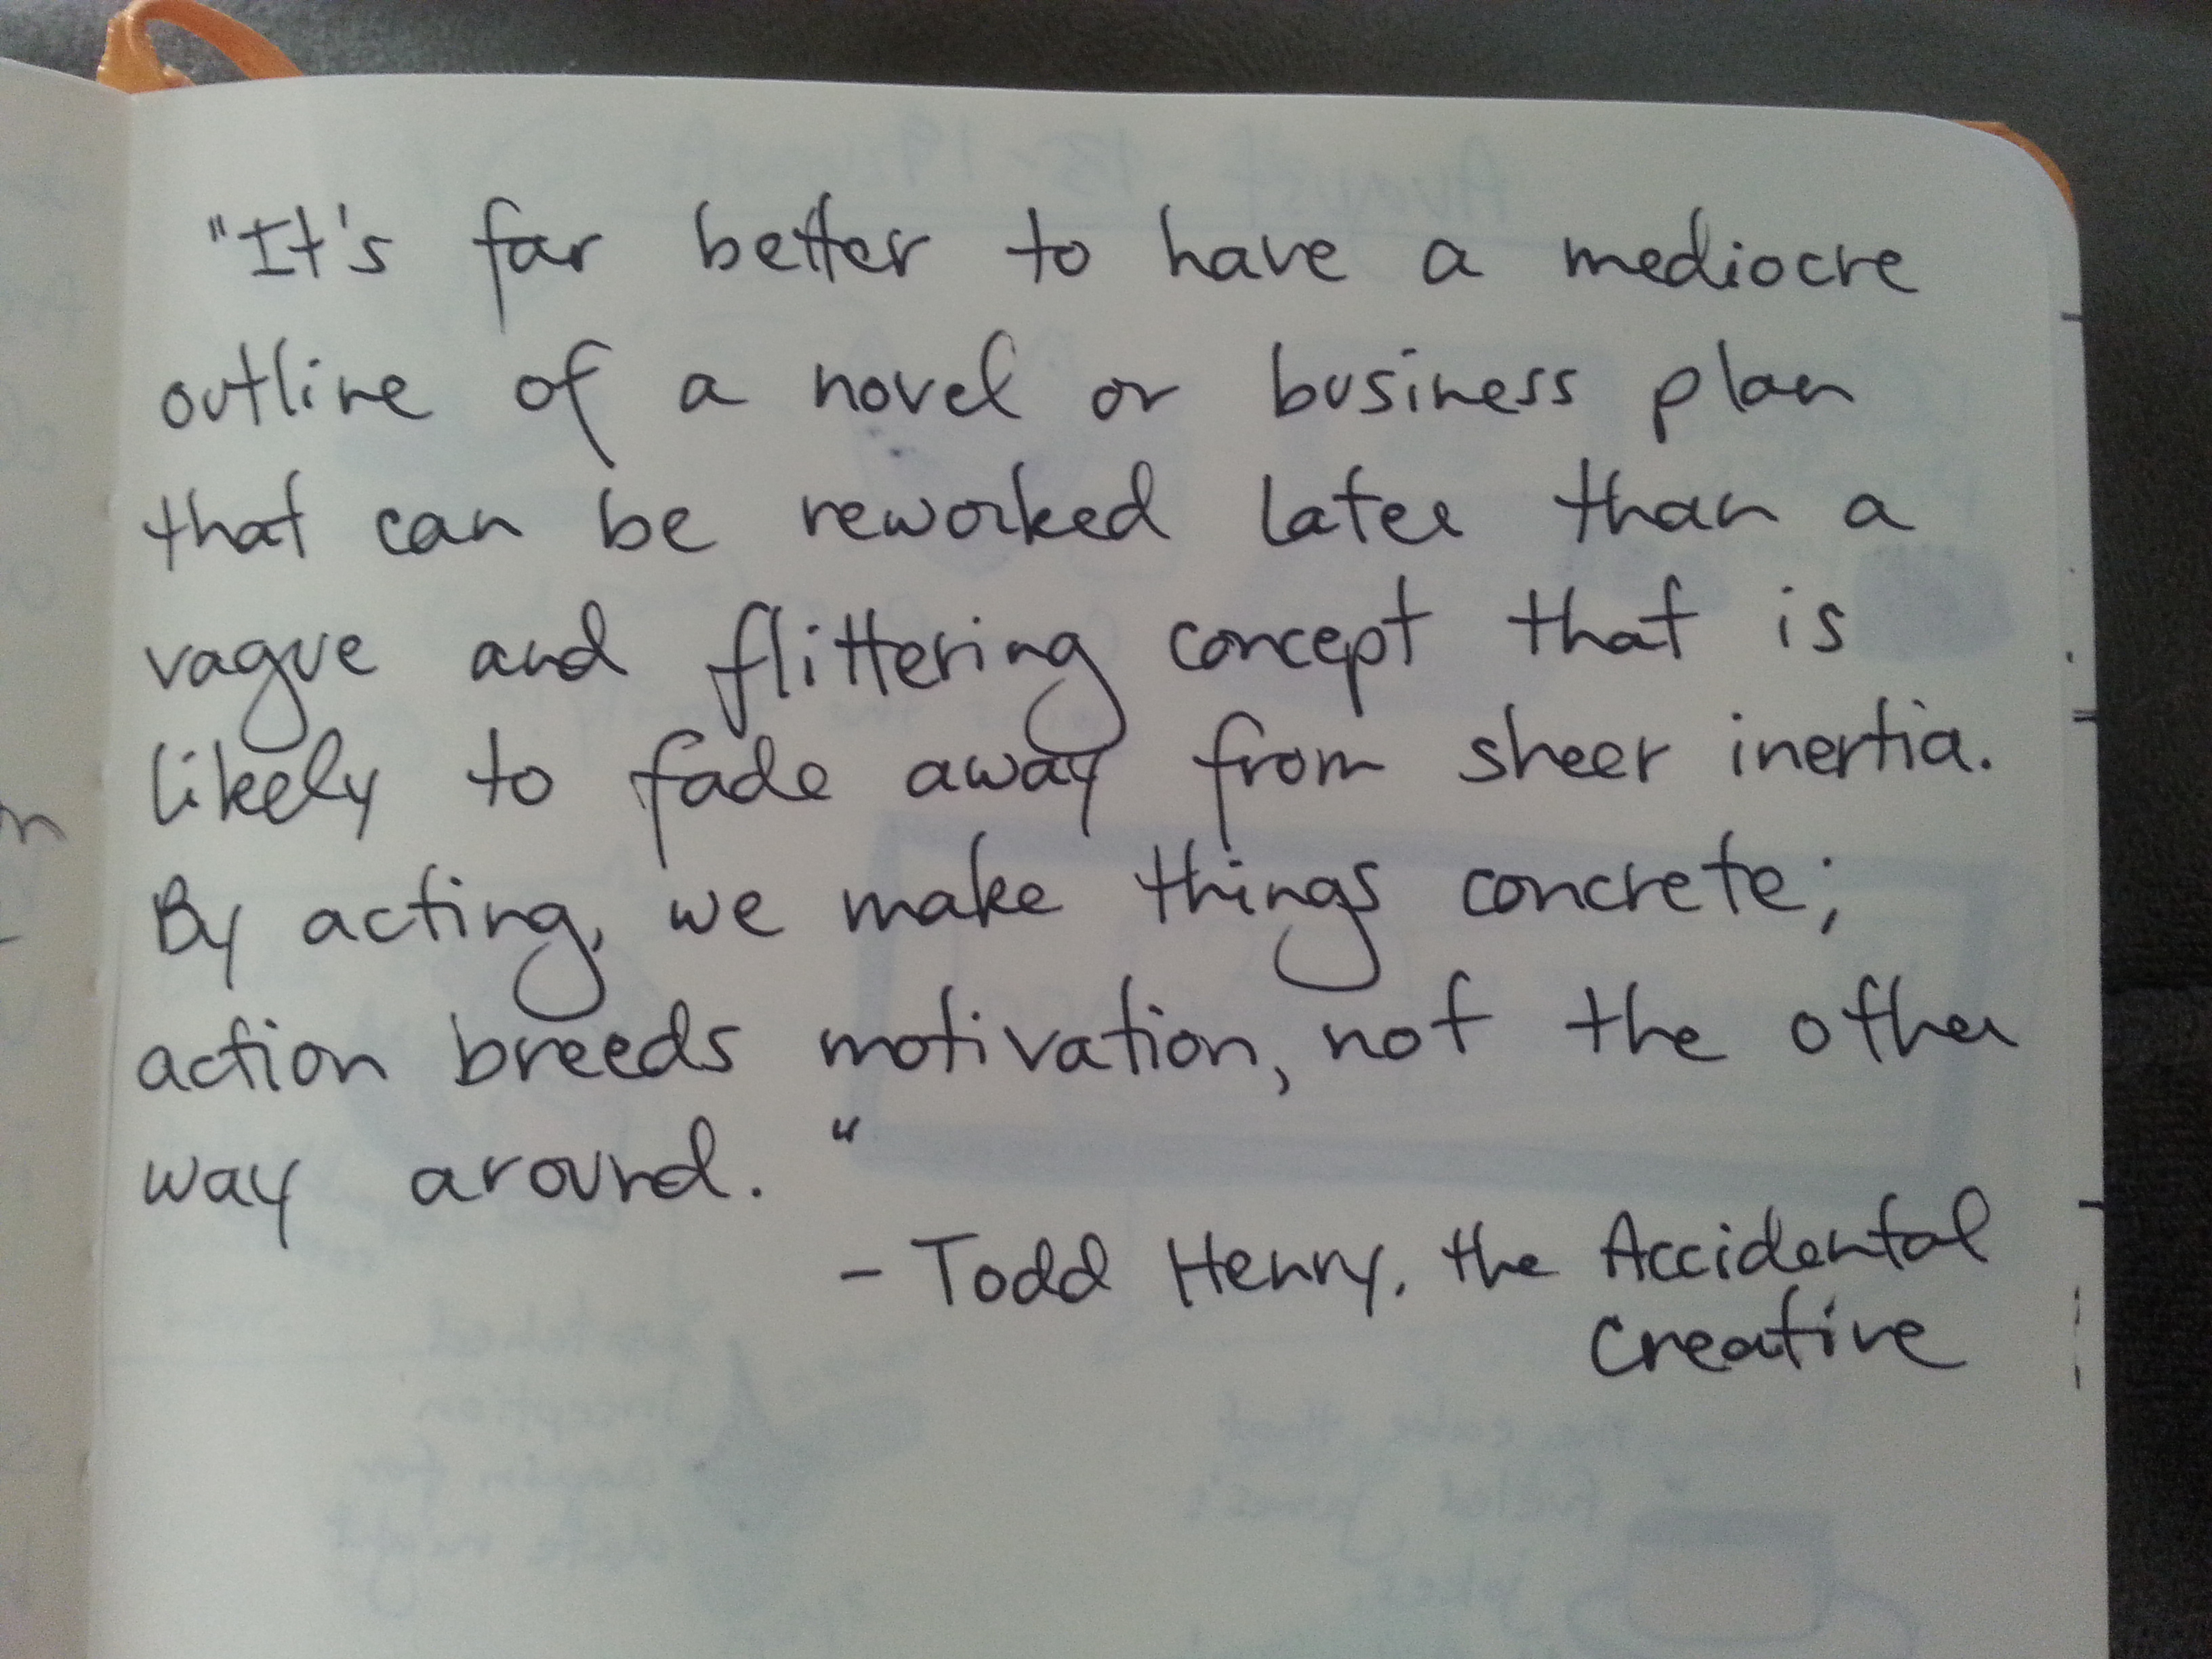 Todd Henry quote